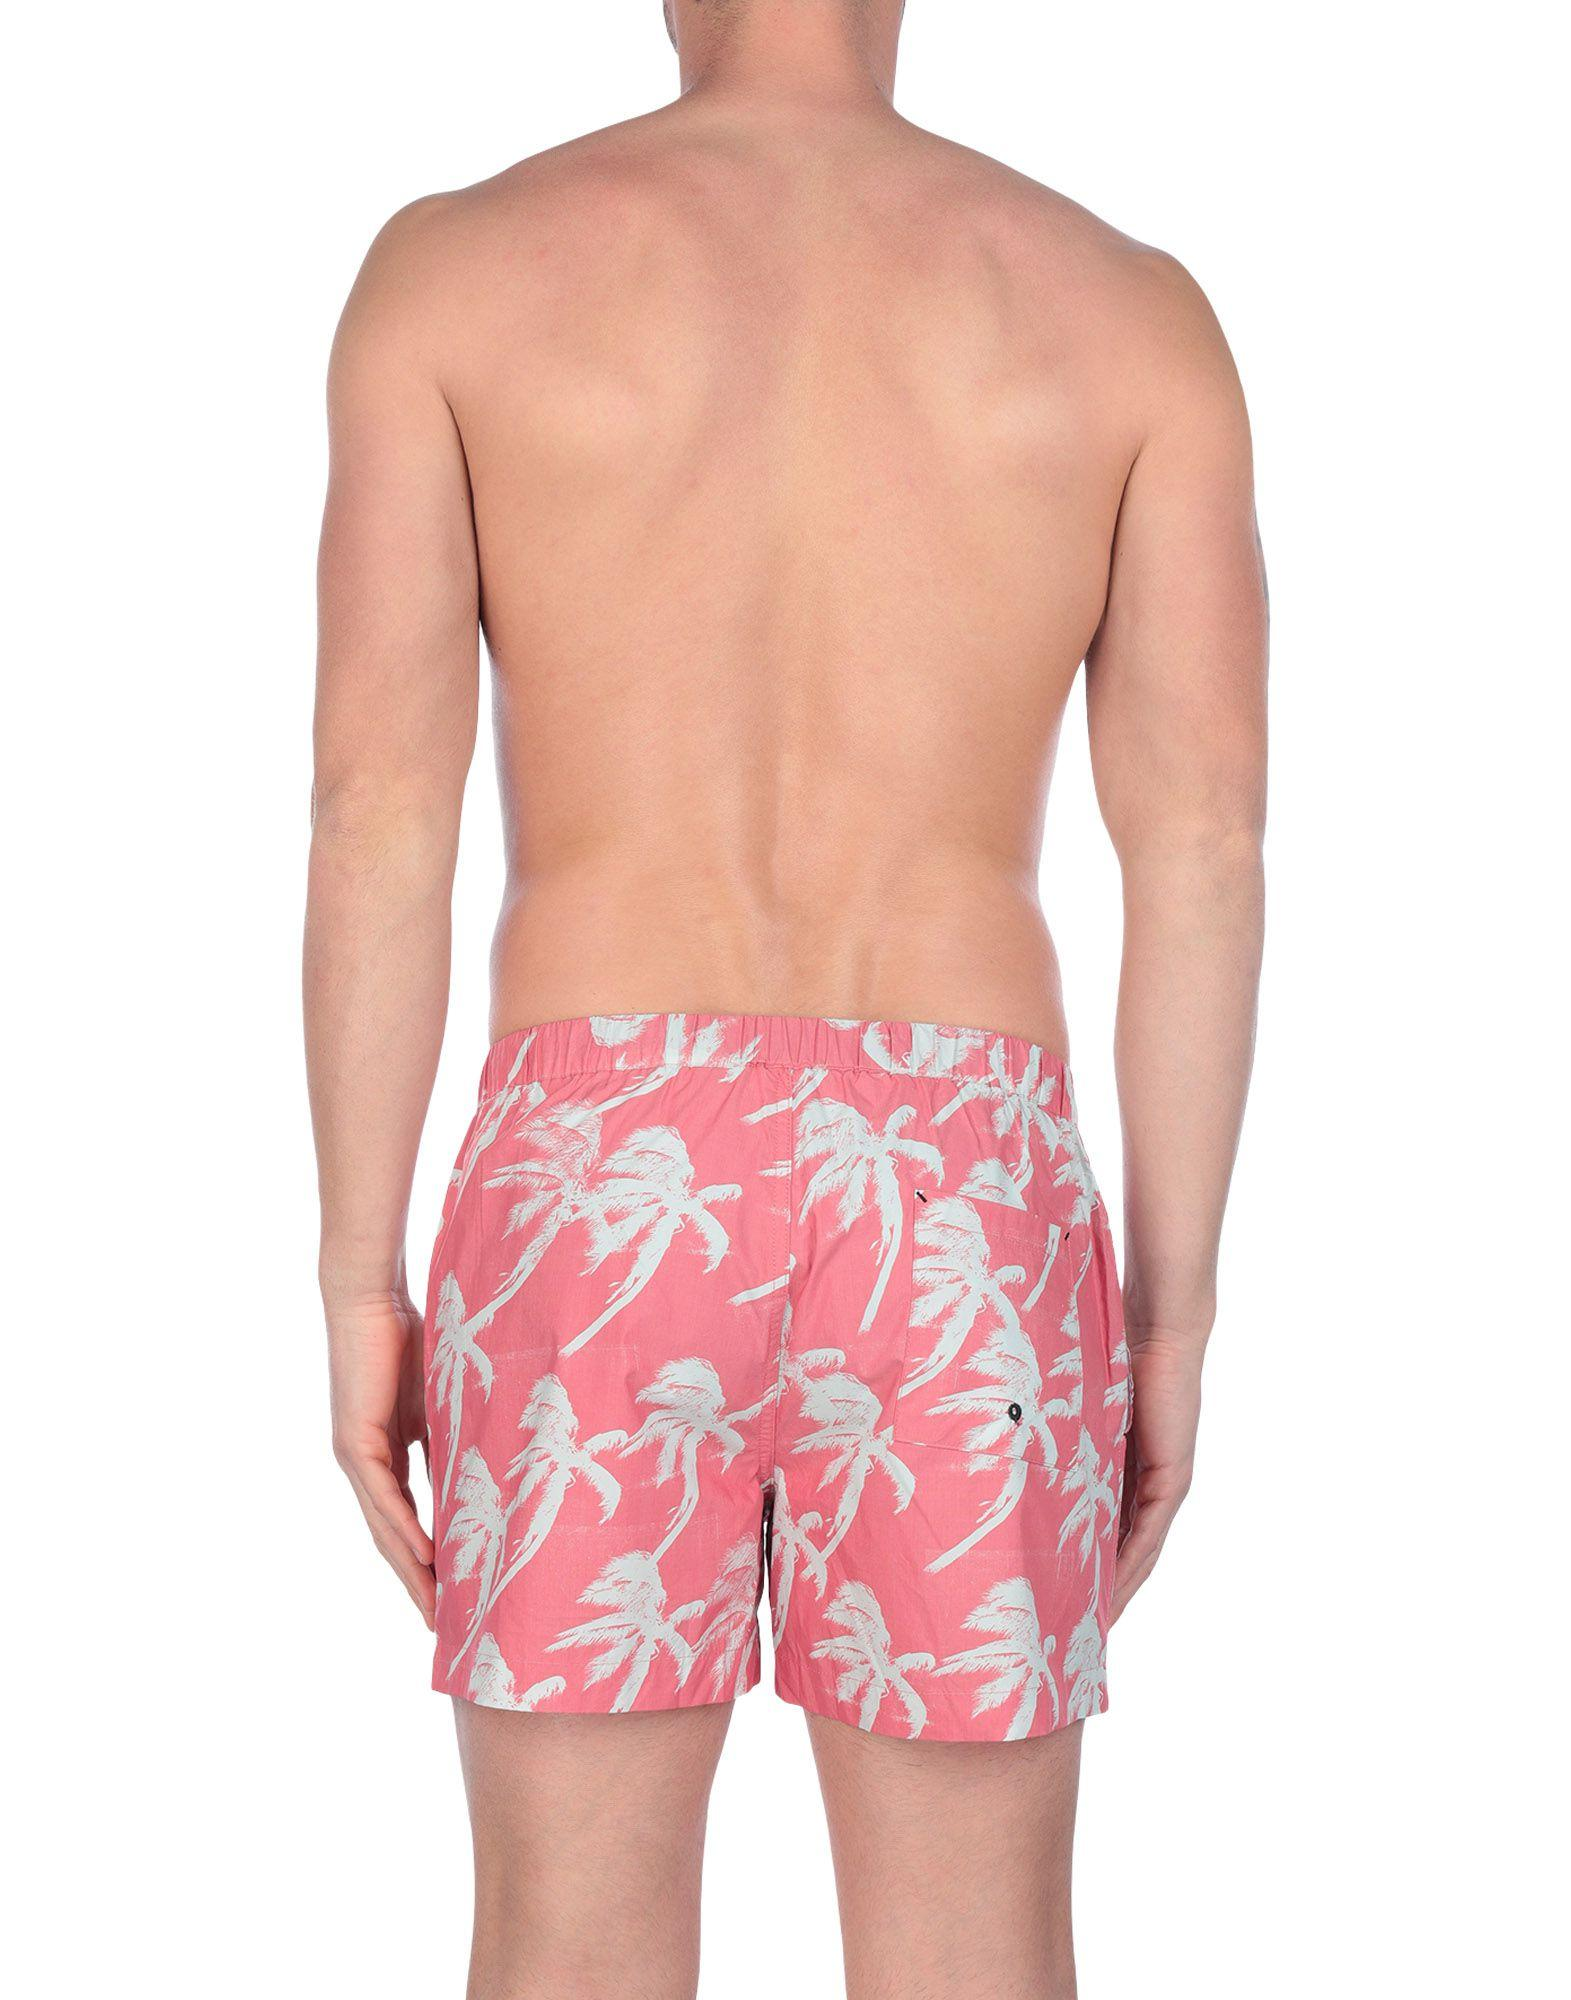 a99b278c5c450 DOUBLE RAINBOUU Swimming Trunks in Pink for Men - Lyst